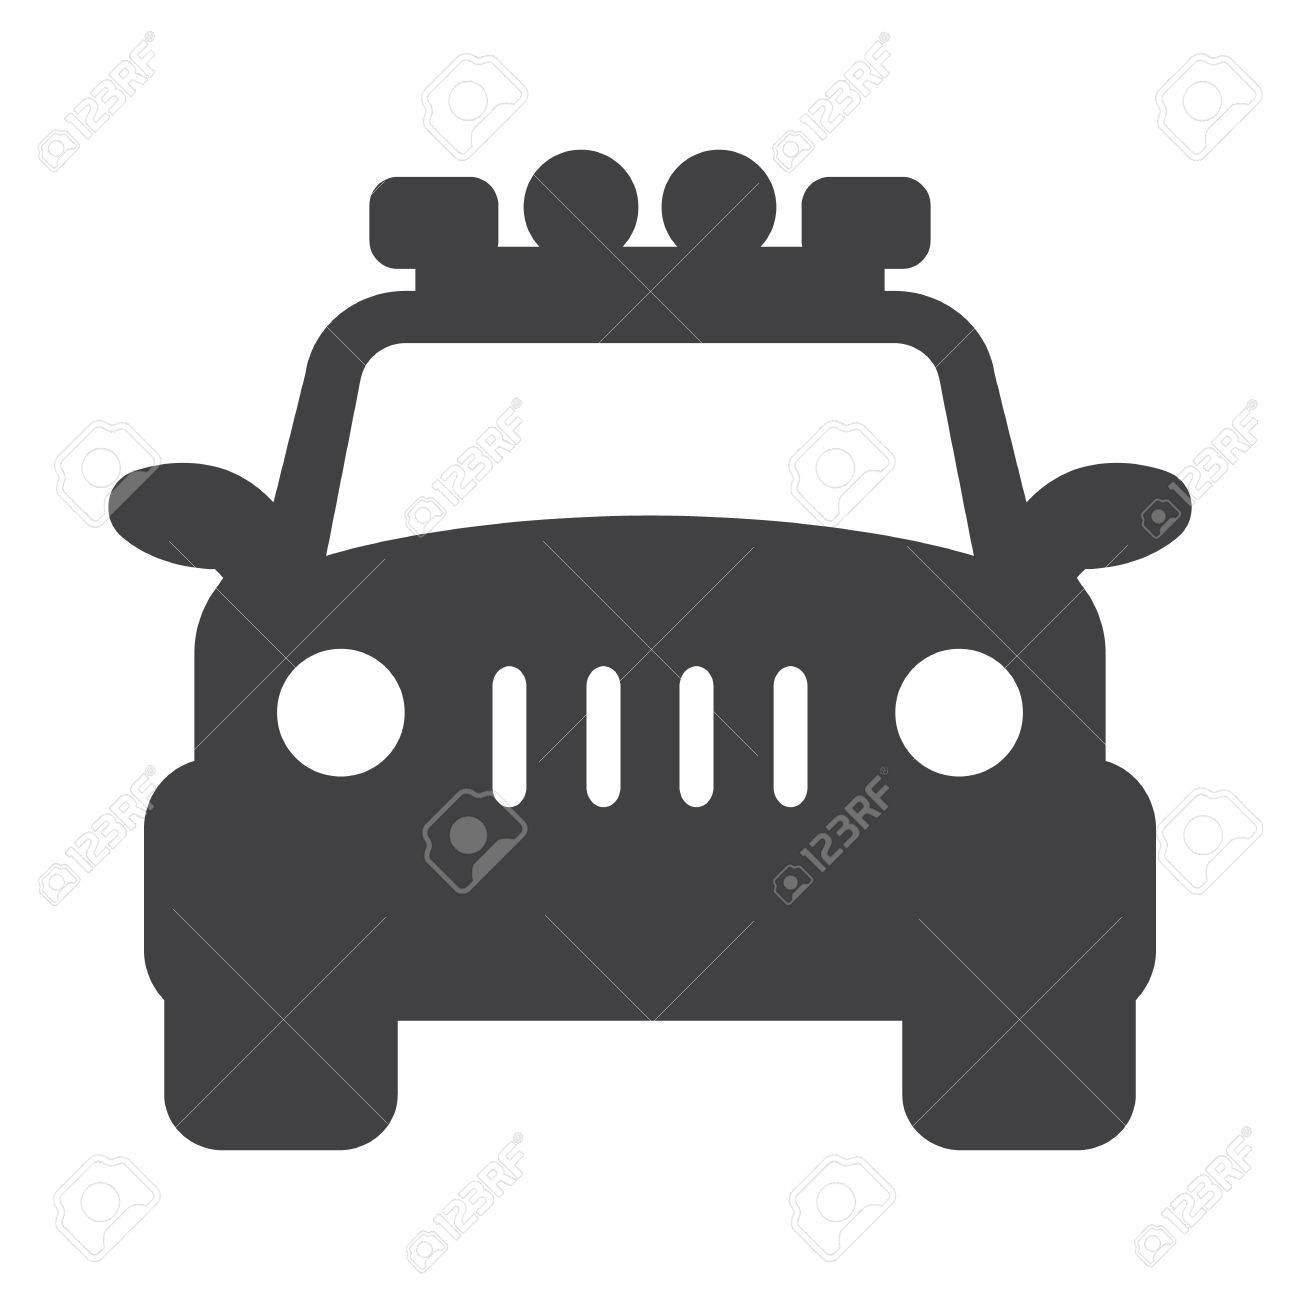 Jeep Black Simple Icon On White Background For Web Design Royalty